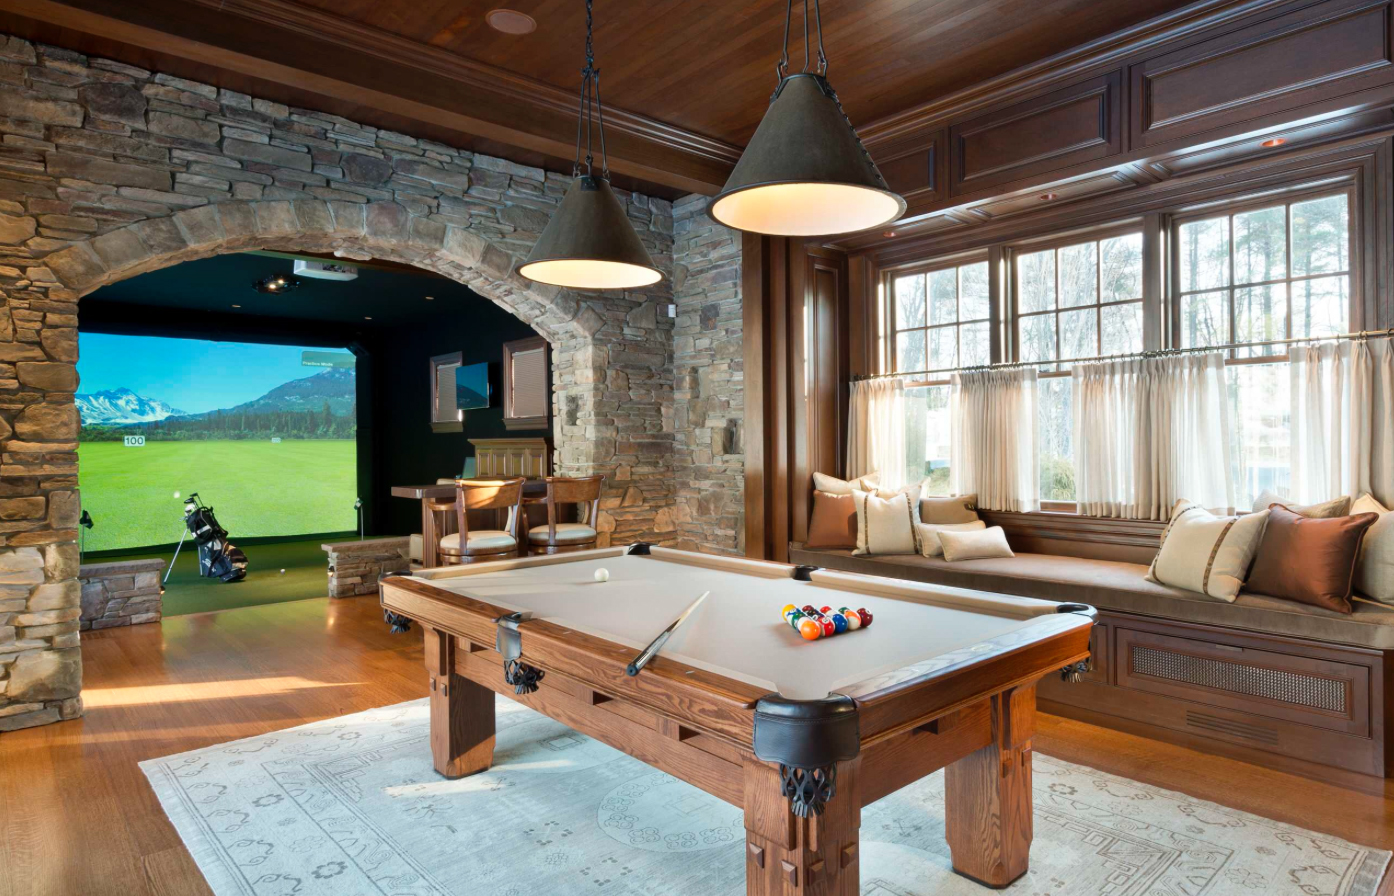 The Rustic Look With Brick Man Cave Idea